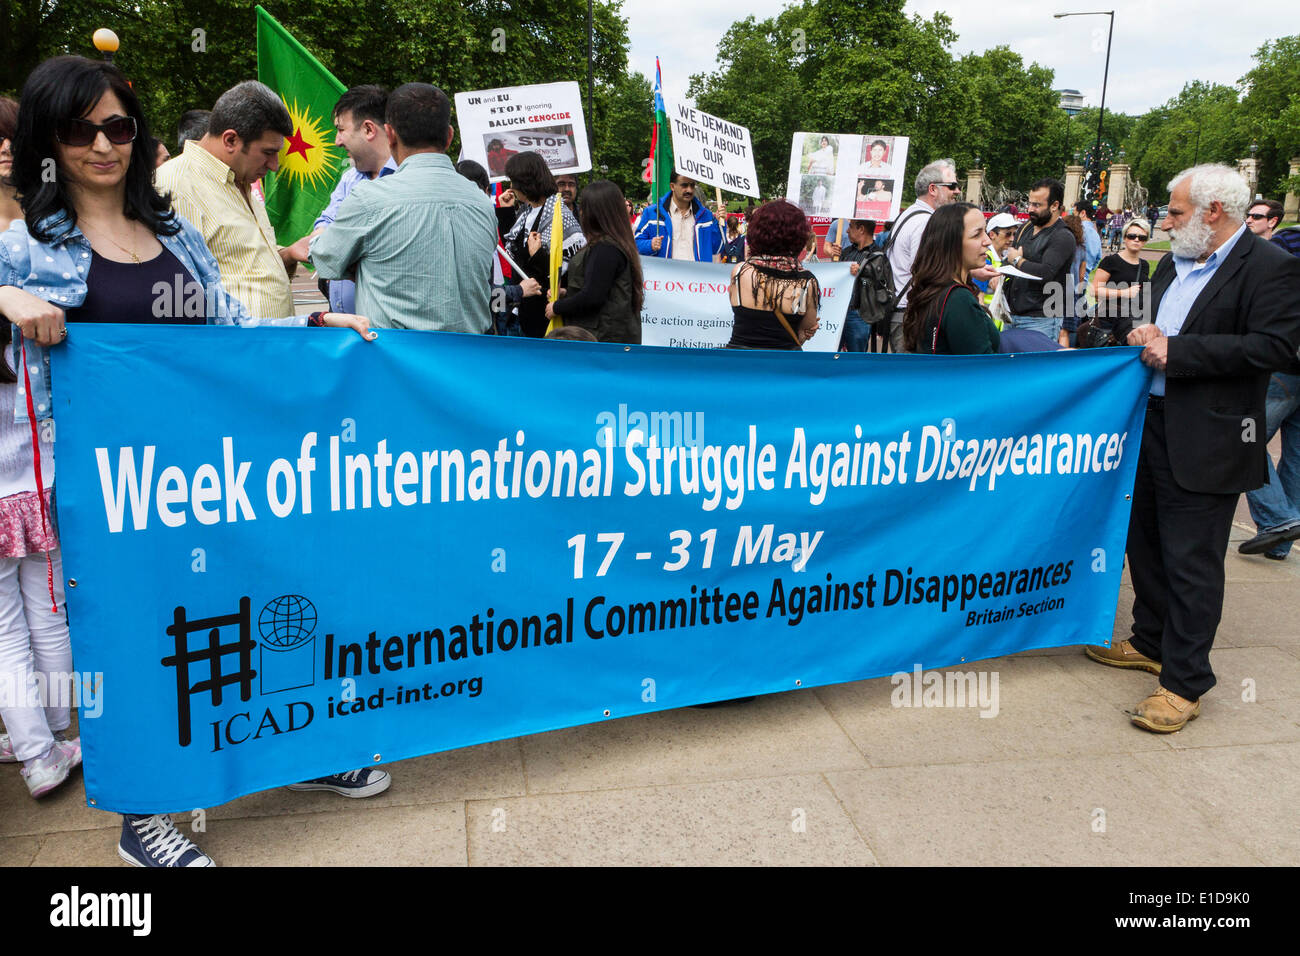 London, UK. 31st May, 2014. International Committee Against Disappearances (ICAD) march. - Stock Image